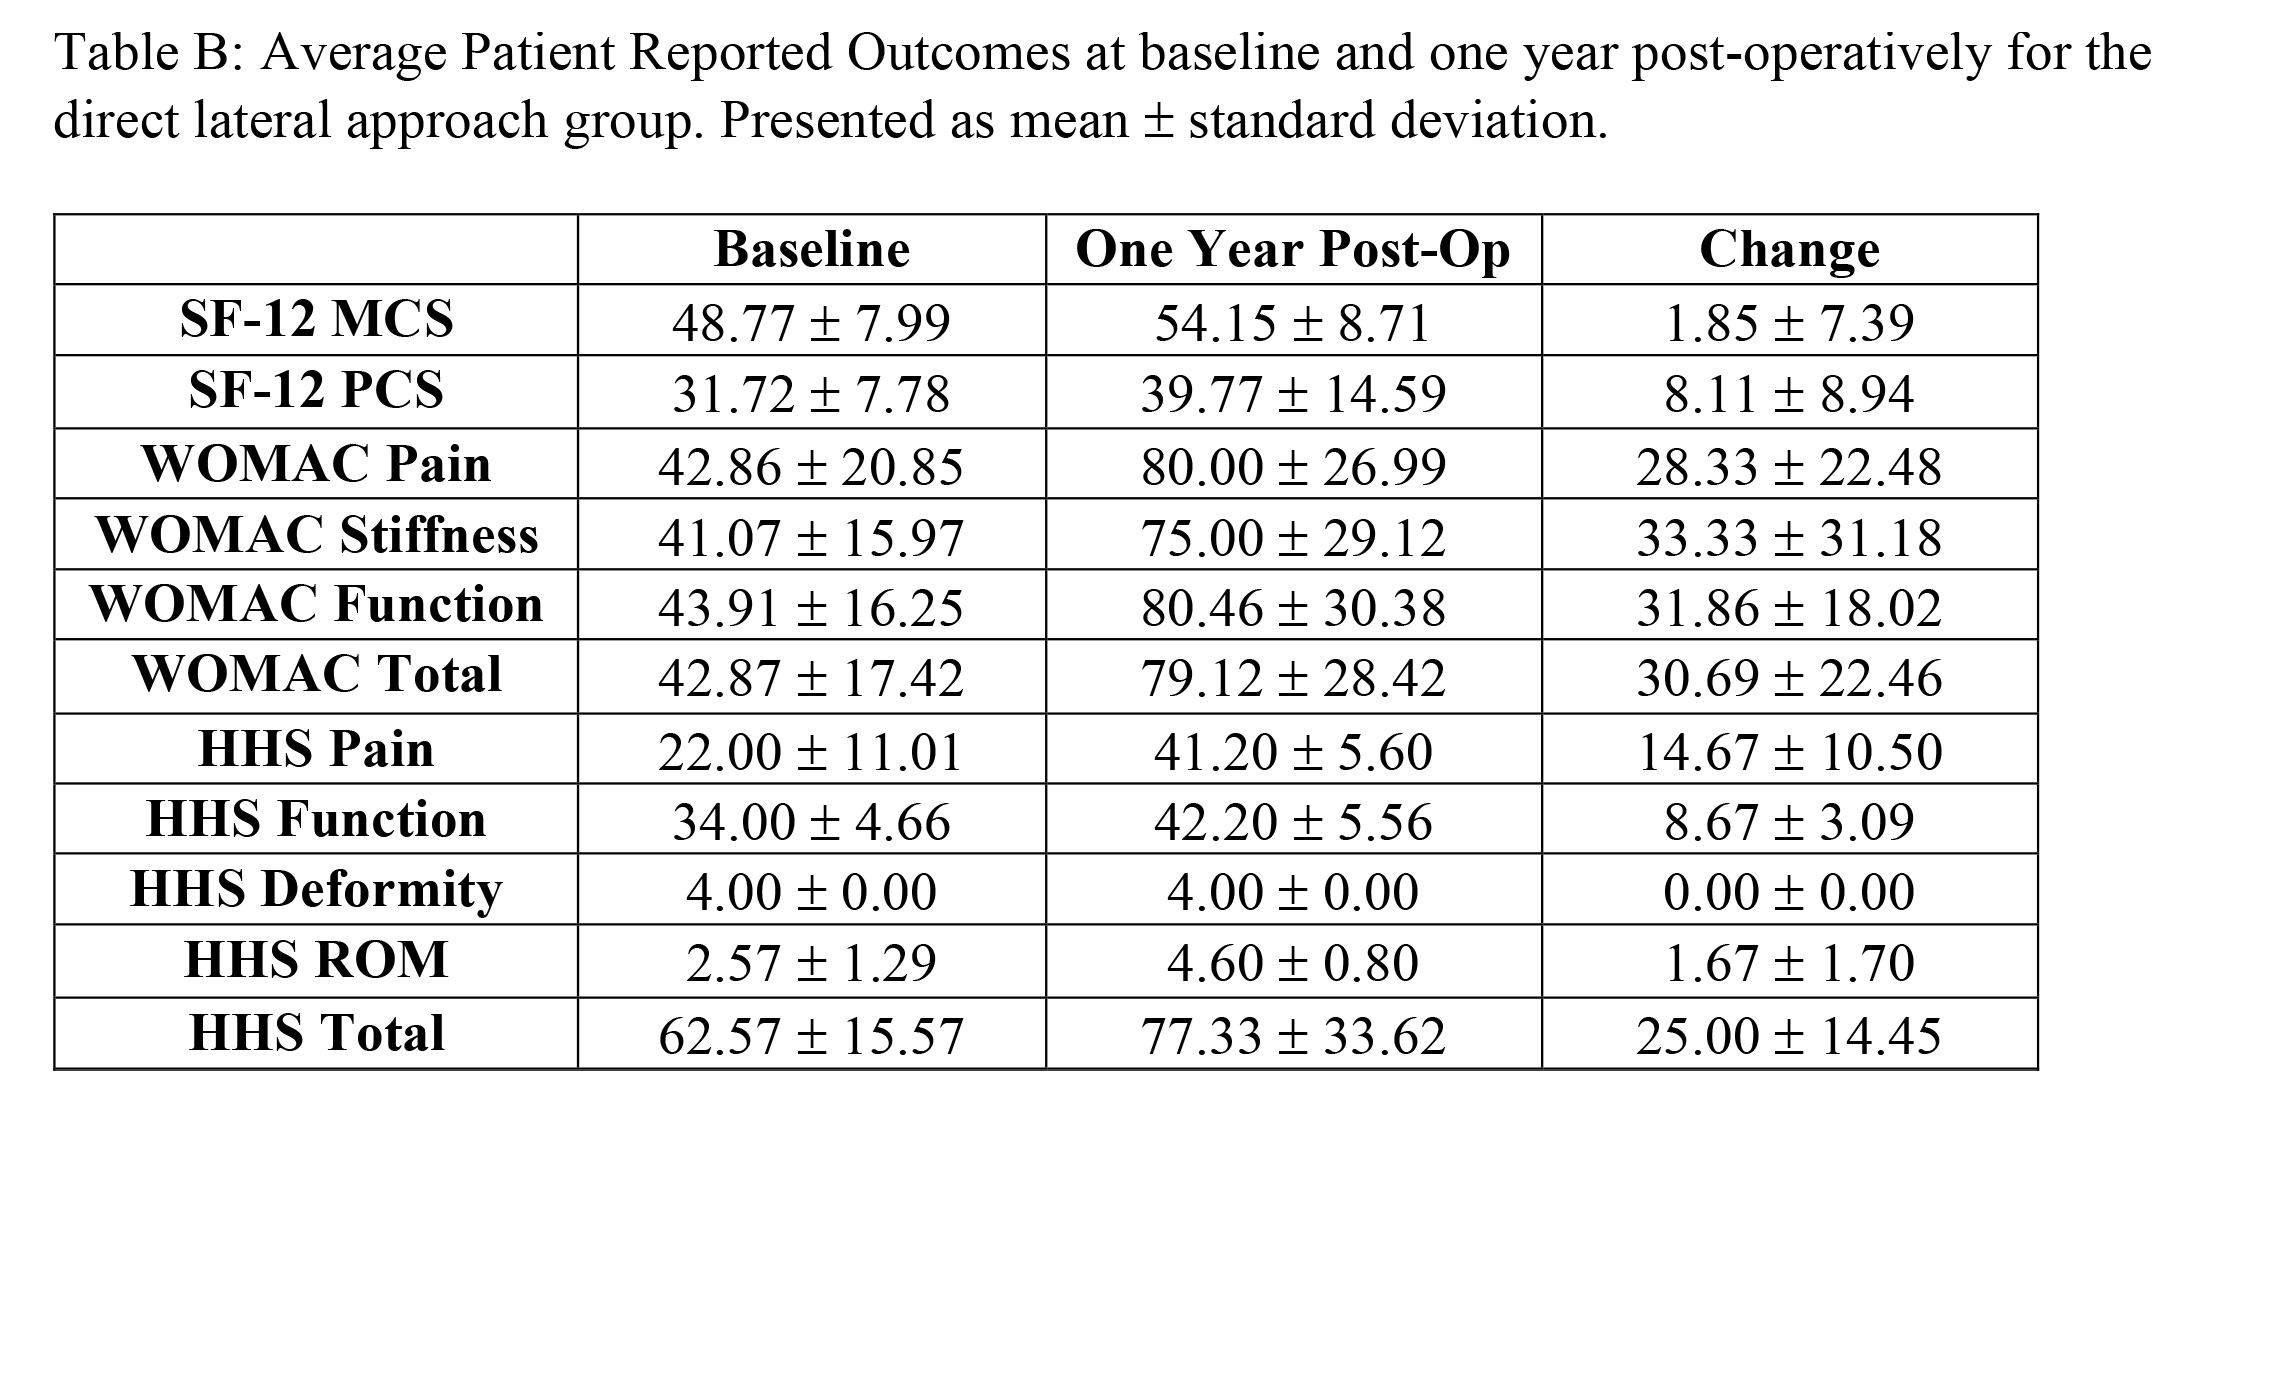 Average Patient Reported Outcomes at baseline and one year post-operatively for the direct lateral approach group. Presented as mean ± standard deviation.